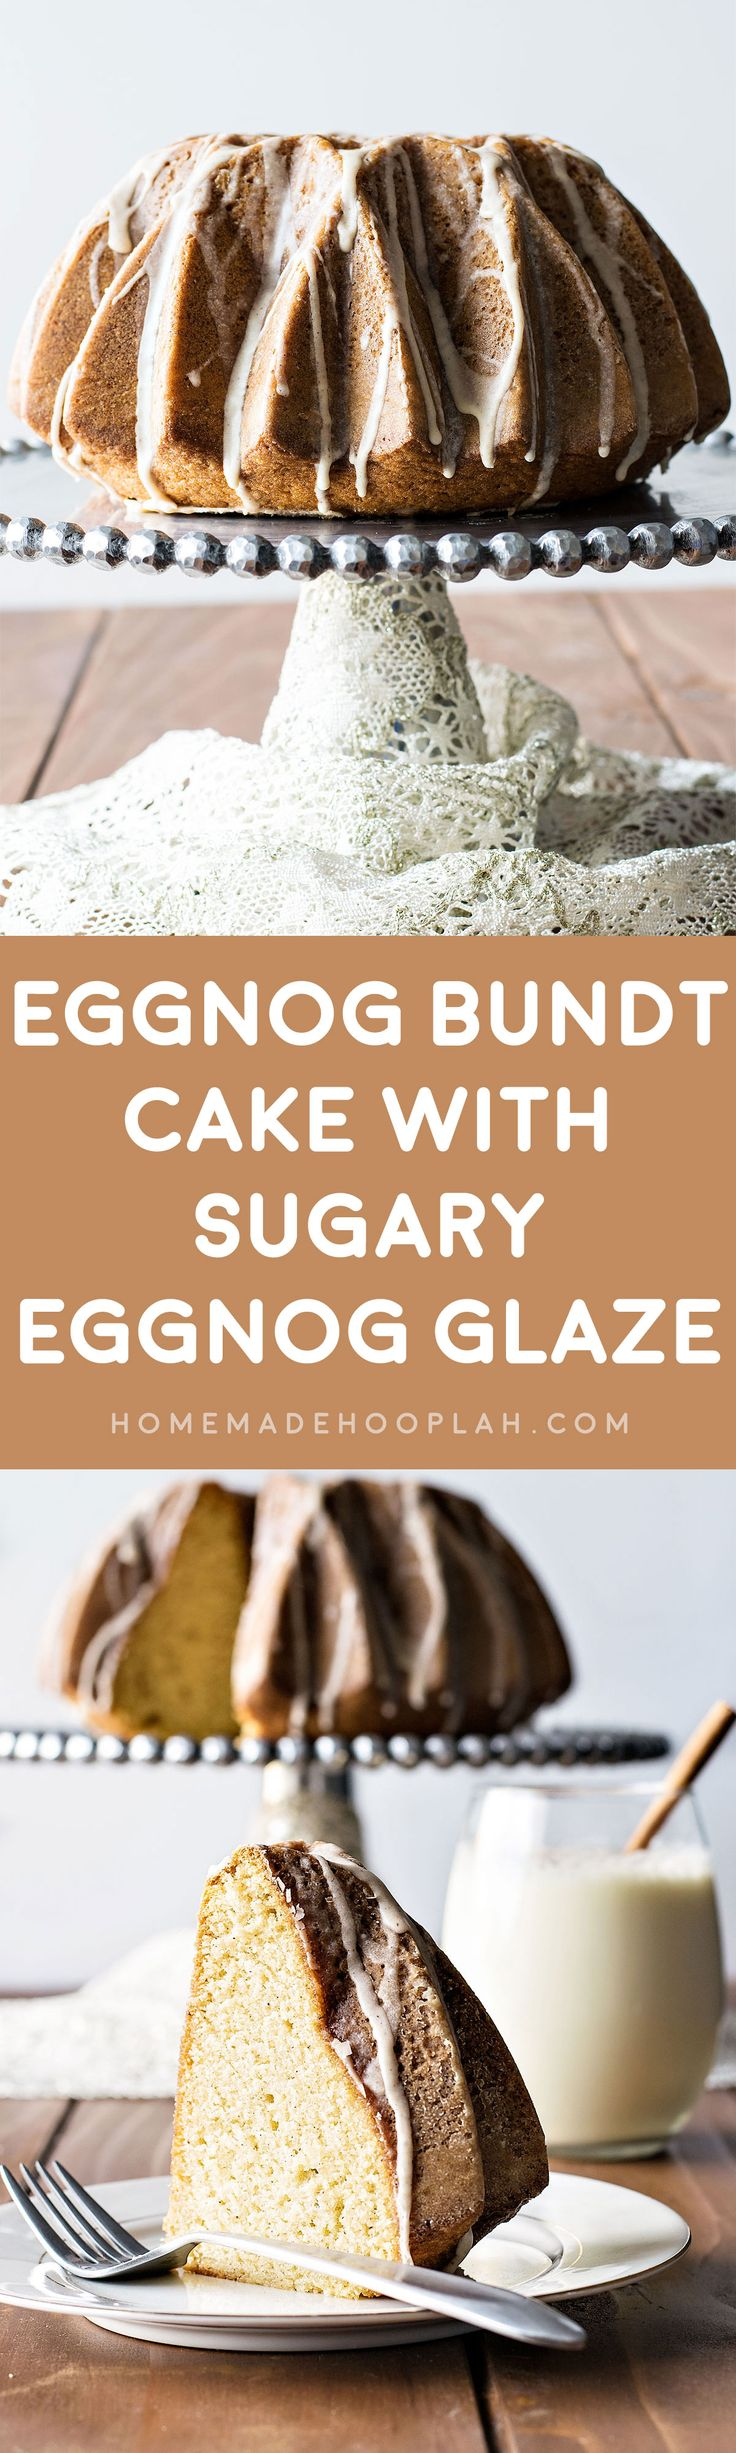 Eggnog Bundt Cake with Sugary Eggnog Glaze! Ultra moist and buttery bunt cake flavored with eggnog, rum, cinnamon, and nutmeg, then covered with a sweet eggnog glaze. It's a sweeter way to enjoy the holiday season's favorite drink!   HomemadeHooplah.com